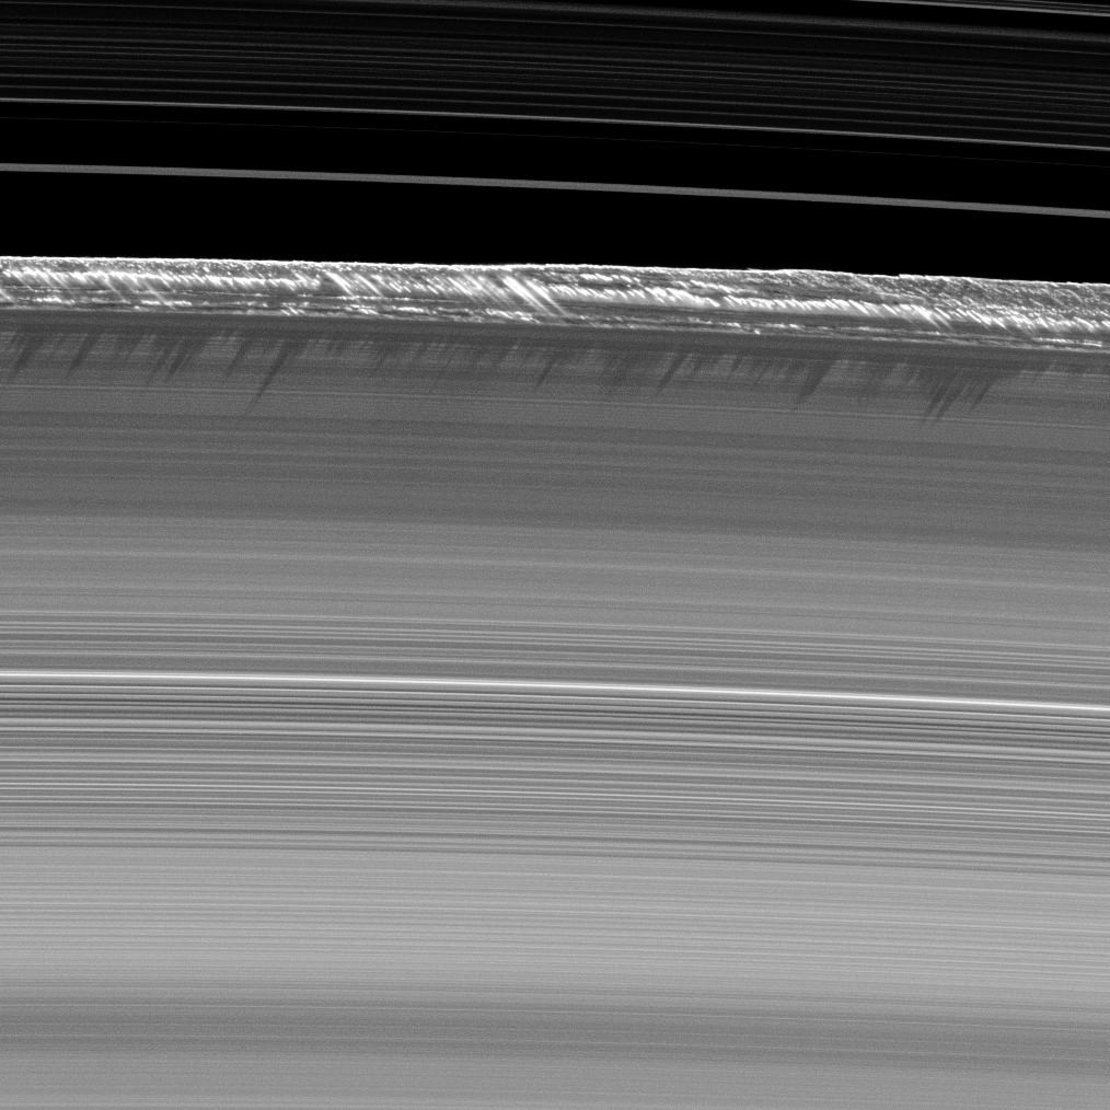 The ever-shifting mountains in the rings of Saturn. Amazing to think how they happen. https://t.co/NmCasL6Uz6 @esa https://t.co/0Pg0ehfota